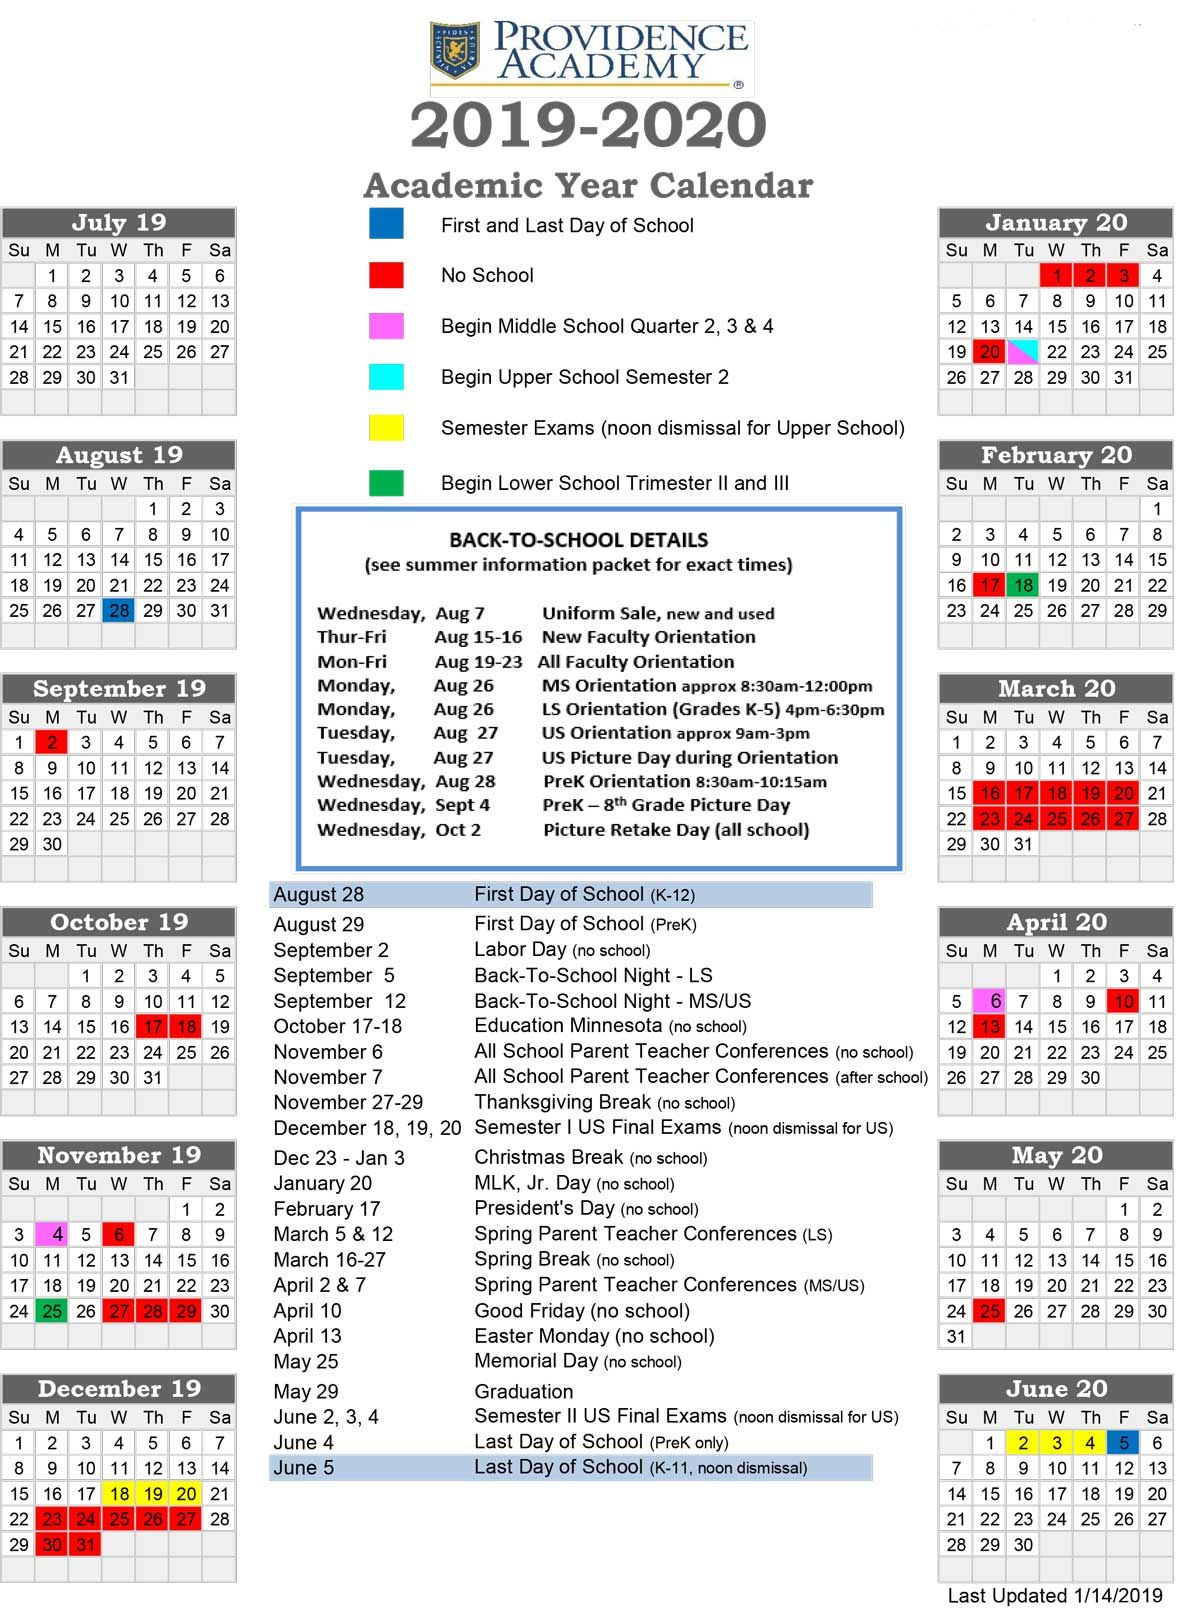 Ucsb Academic Calendar 2022.25 Golden Marketing Calendar Templates For Excel And Google Sheets 2020 2021 2022 Free Tipsographic Marketing Calendar Template School Calendar High School Calendar